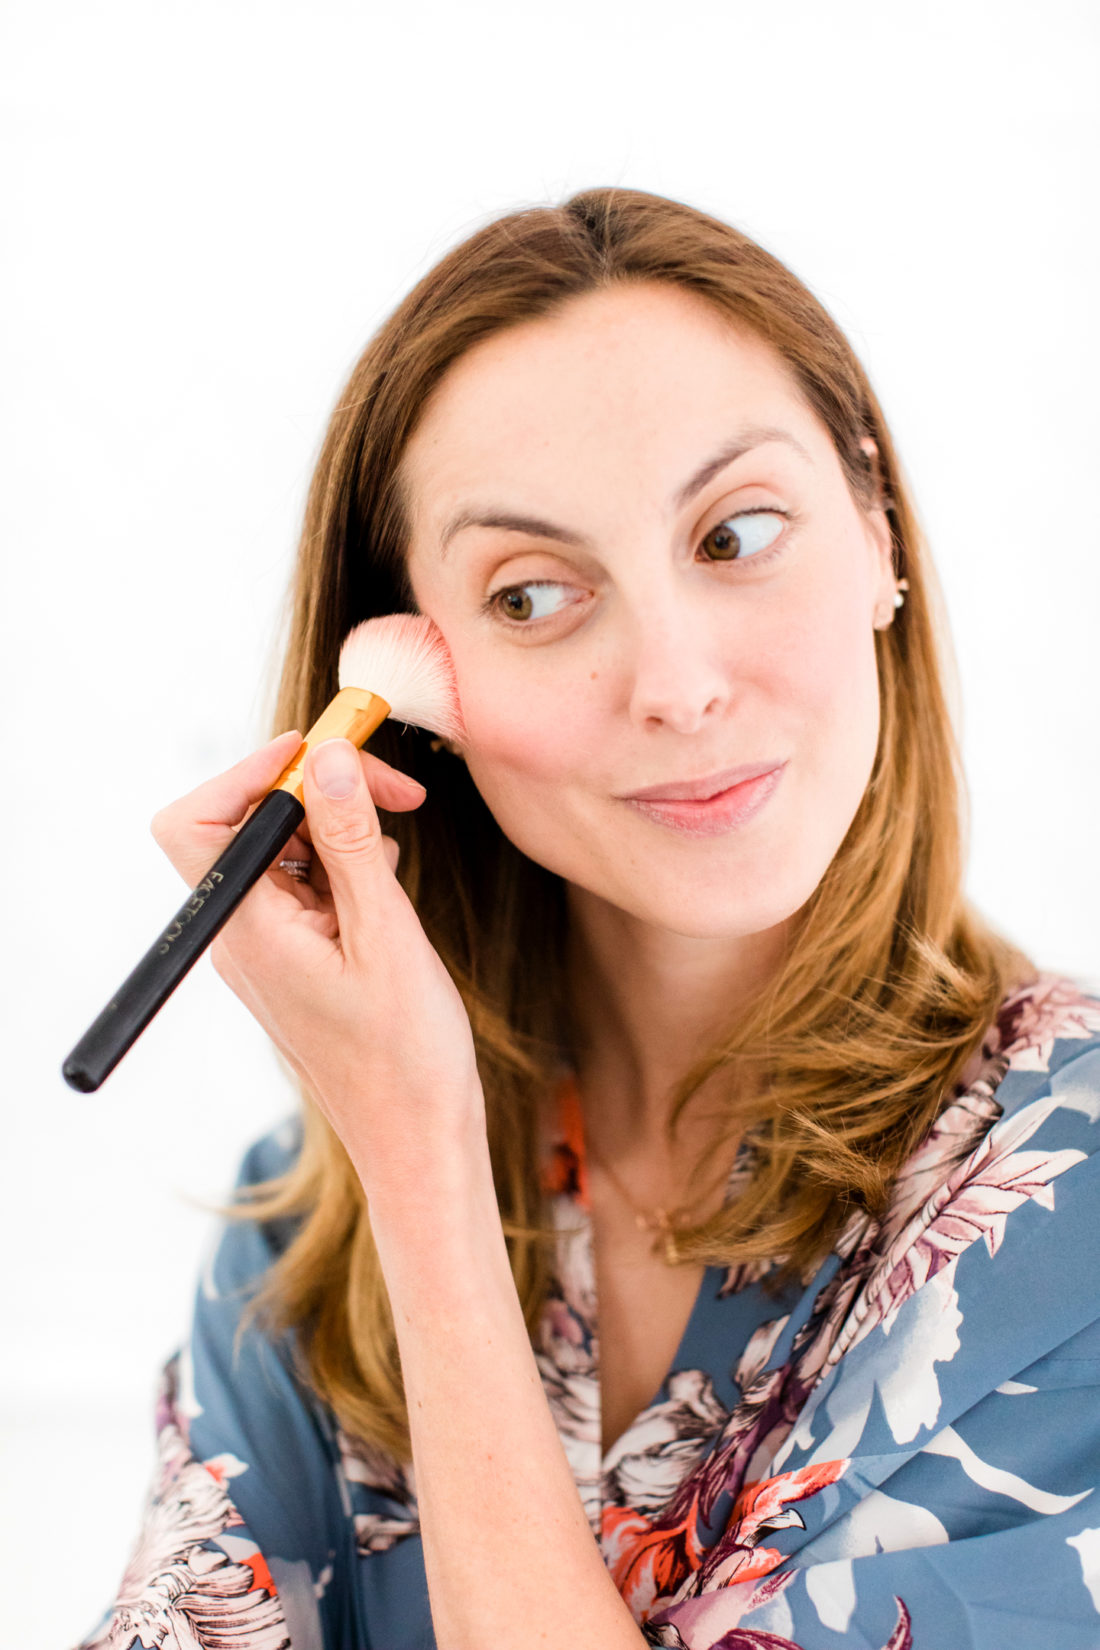 Eva Amurri Martino applies blush to the apples of her cheeks and cheekbones as part of her photo shoot beauty tutorial